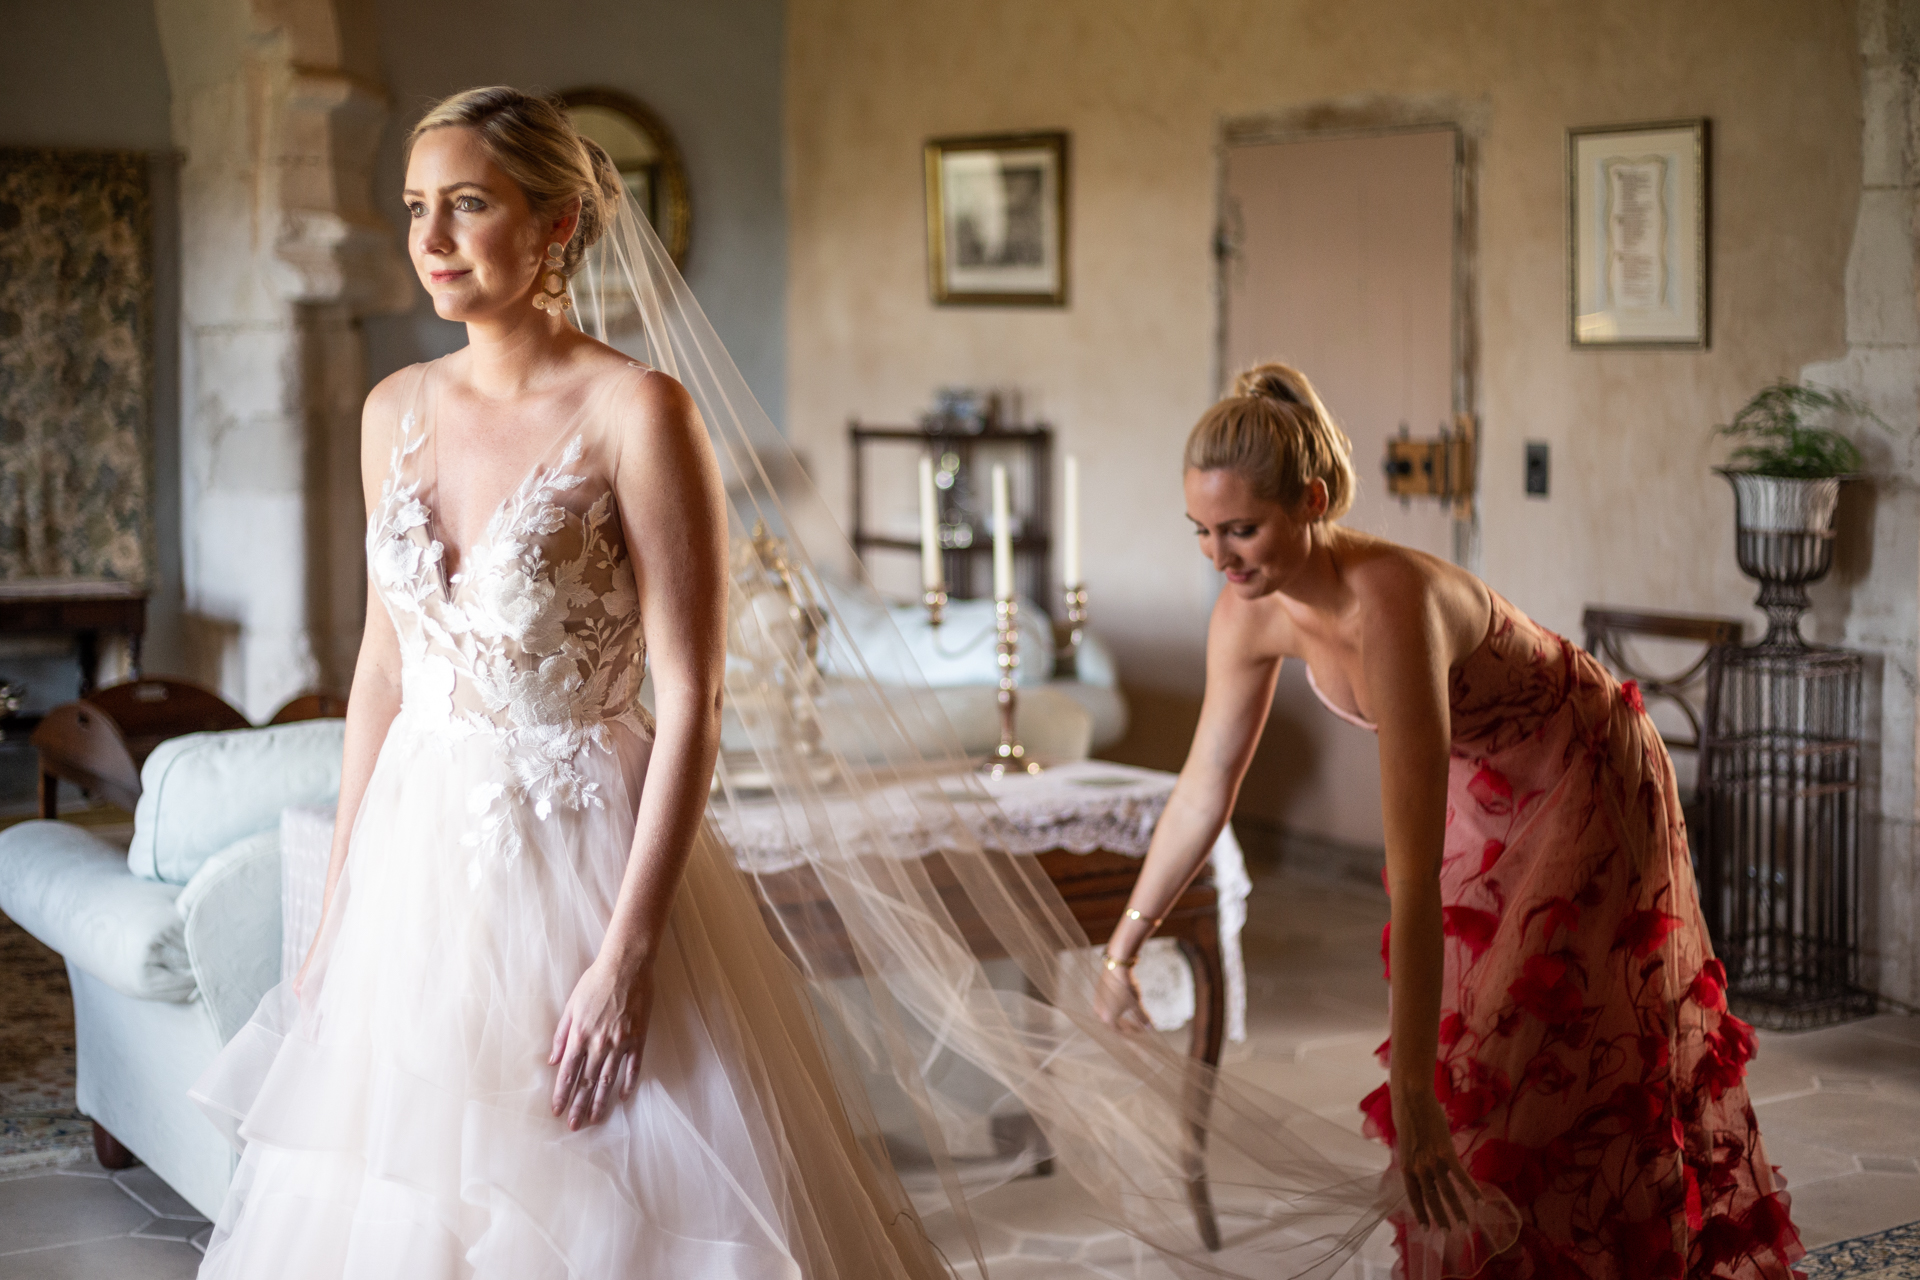 Bride Wedding Picture from Chateau de Brametourte | The brides sister helped her to get ready